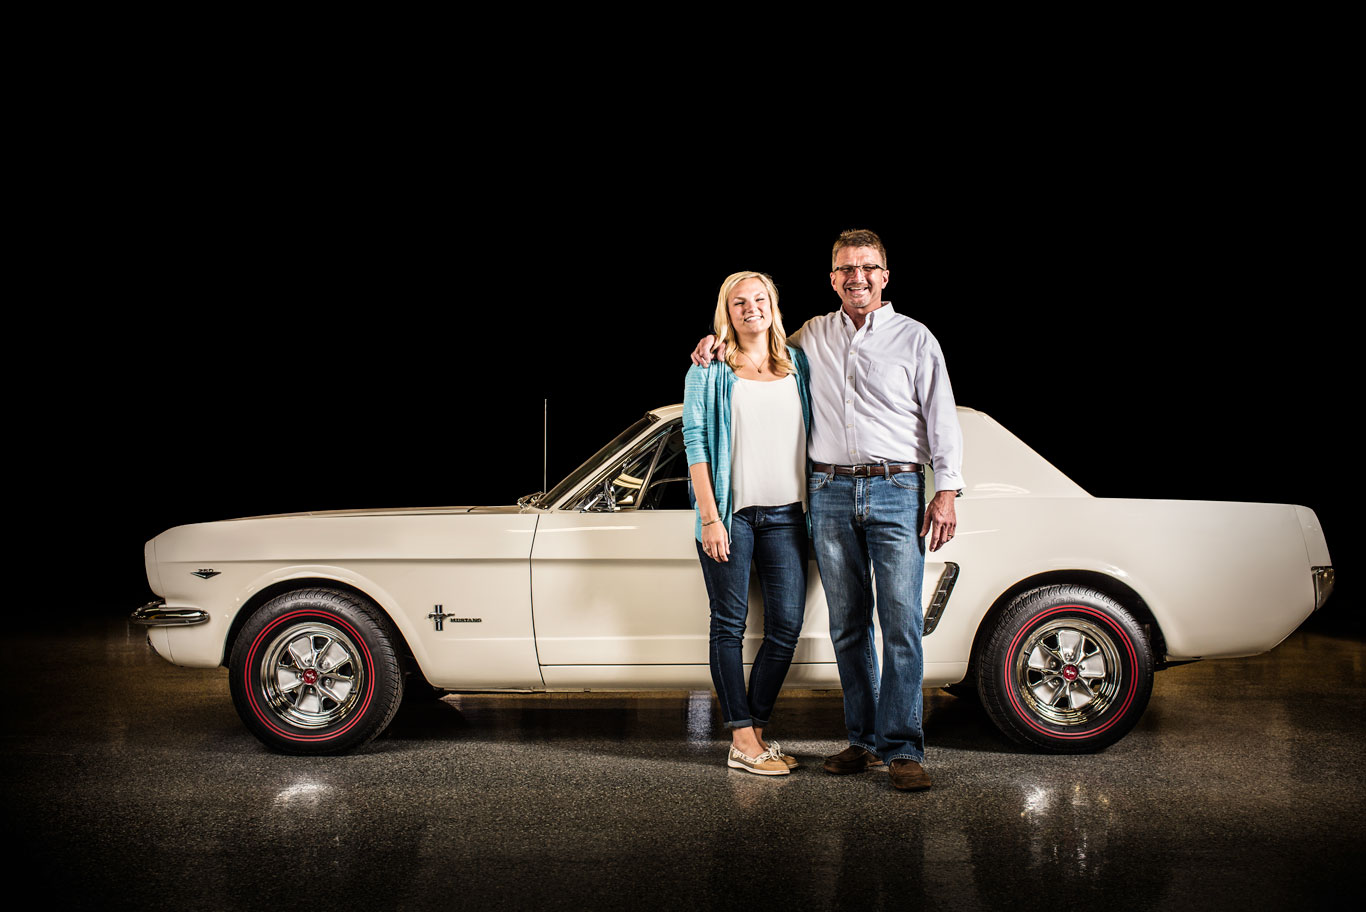 The Great Race: Hagerty rookie team ready for the 'adventure of a lifetime' thumbnail